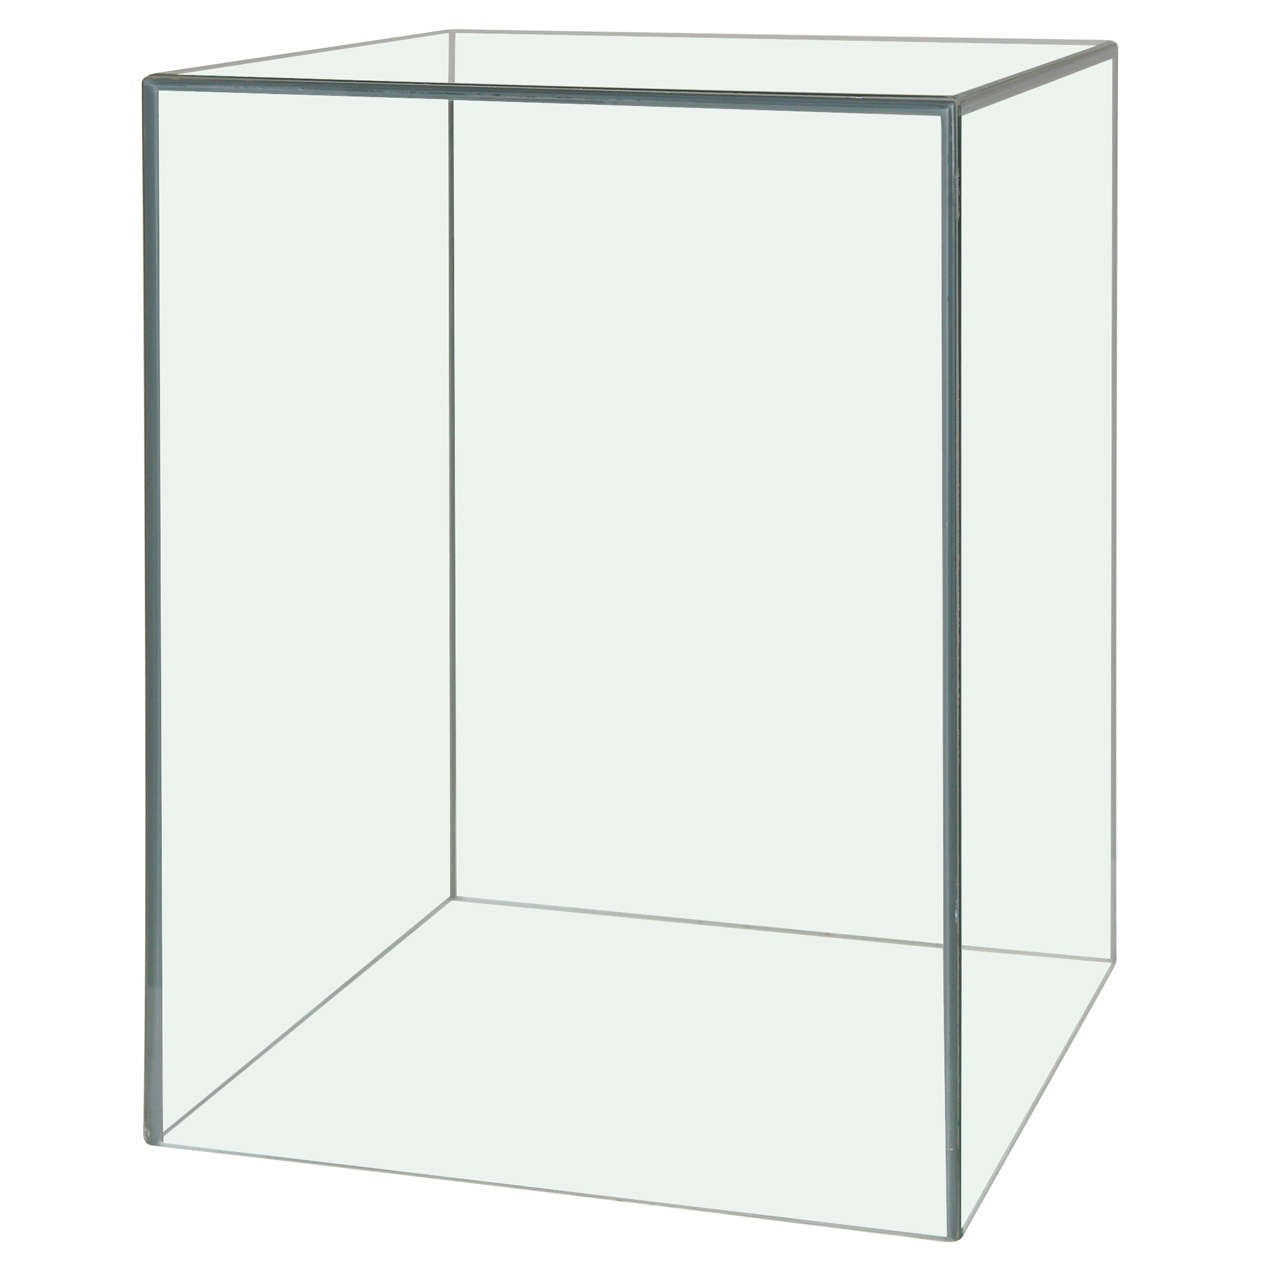 Mid century glass cube side table at 1stdibs for Cube side table